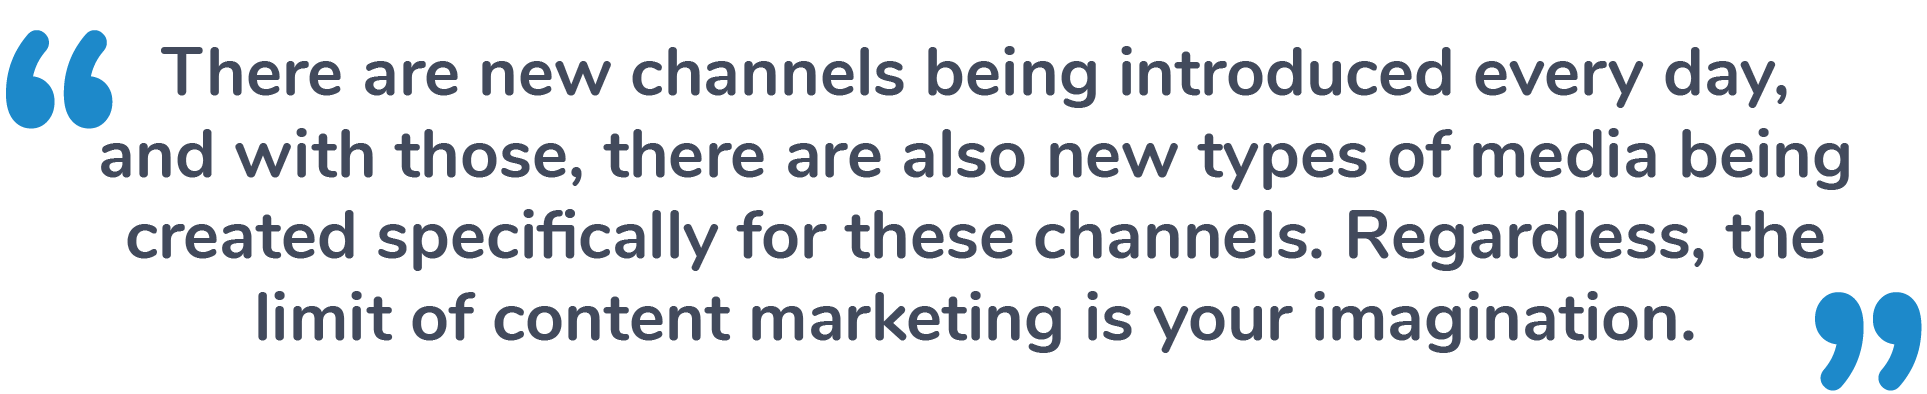 content marketing channels